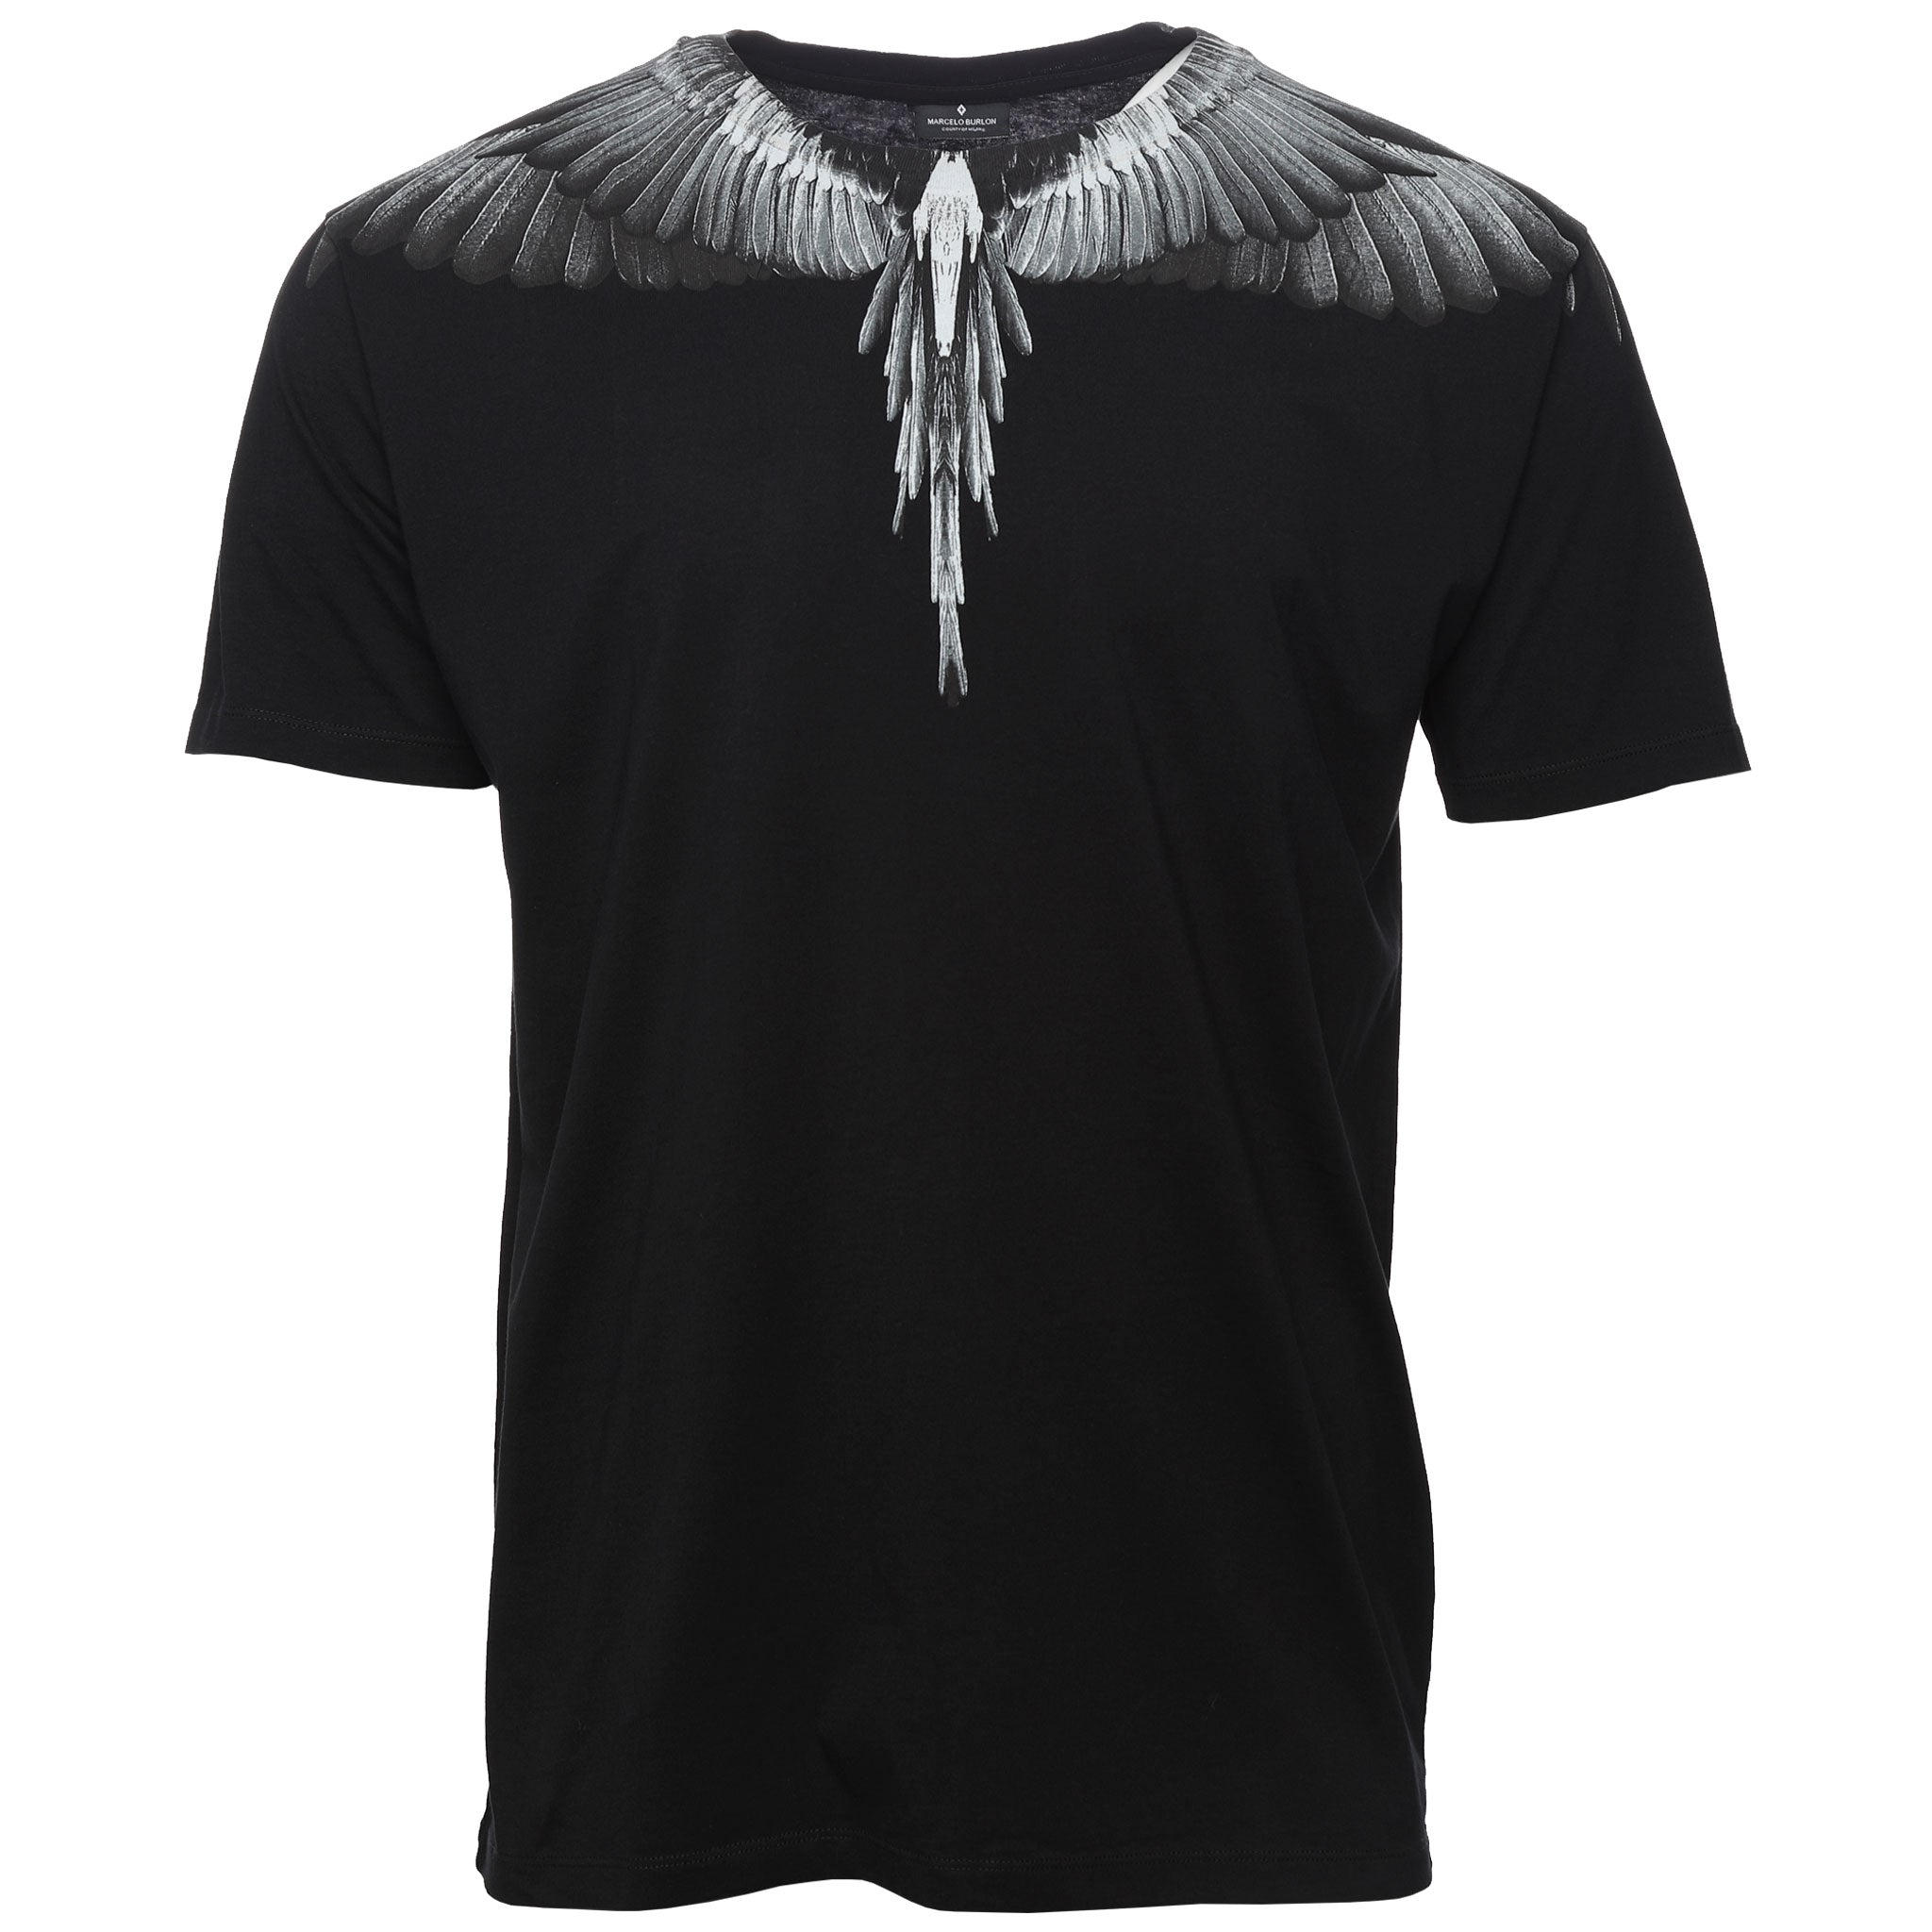 Black Wings T-Shirt